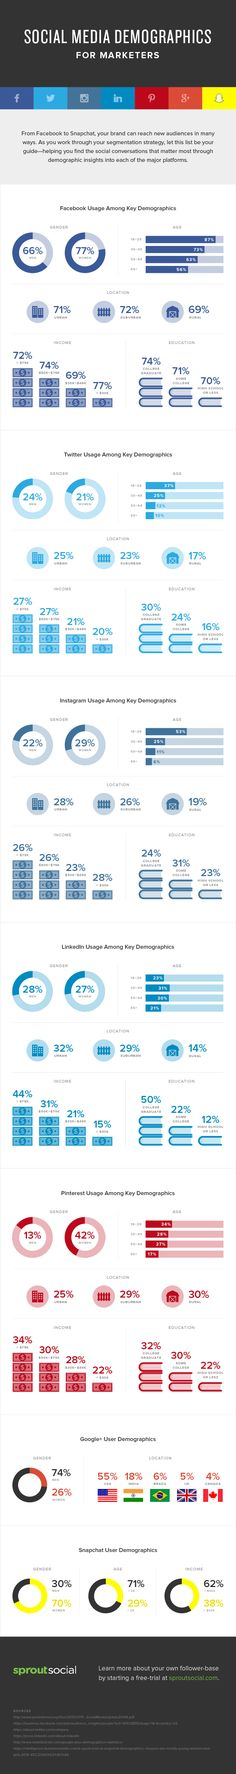 2015 Social Media Demographics For Marketers | WeRSM | We Are Social Media